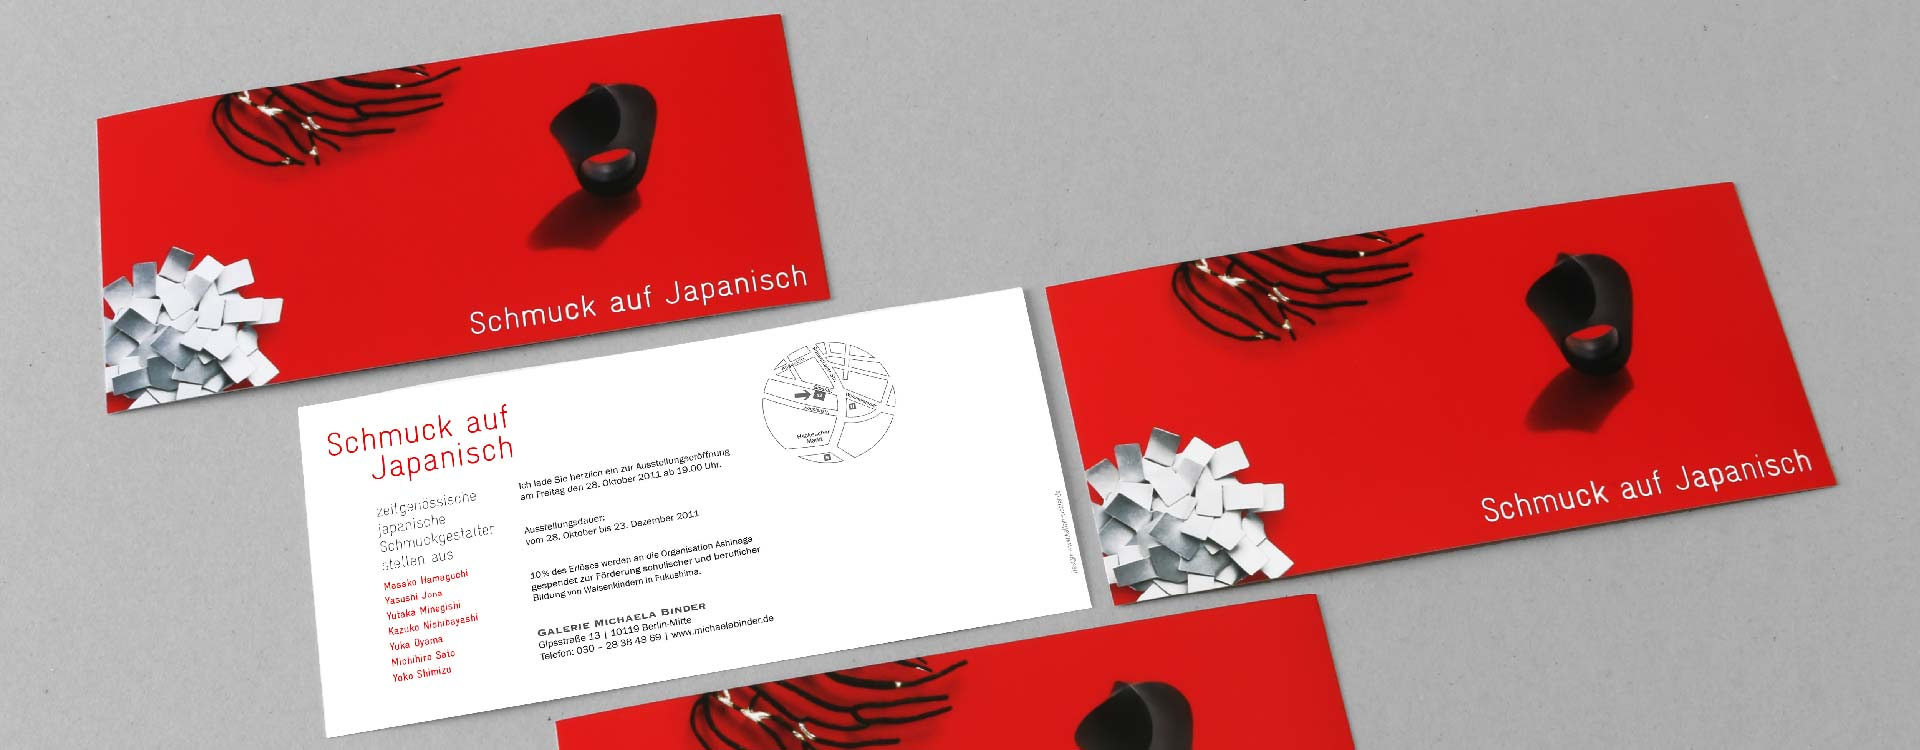 Invitation card for the Schmuck auf Japanisch jewellery exhibition 2011 in the gallery of Michaela Binder, Berlin; Design: Kattrin Richter | Graphic Design Studio